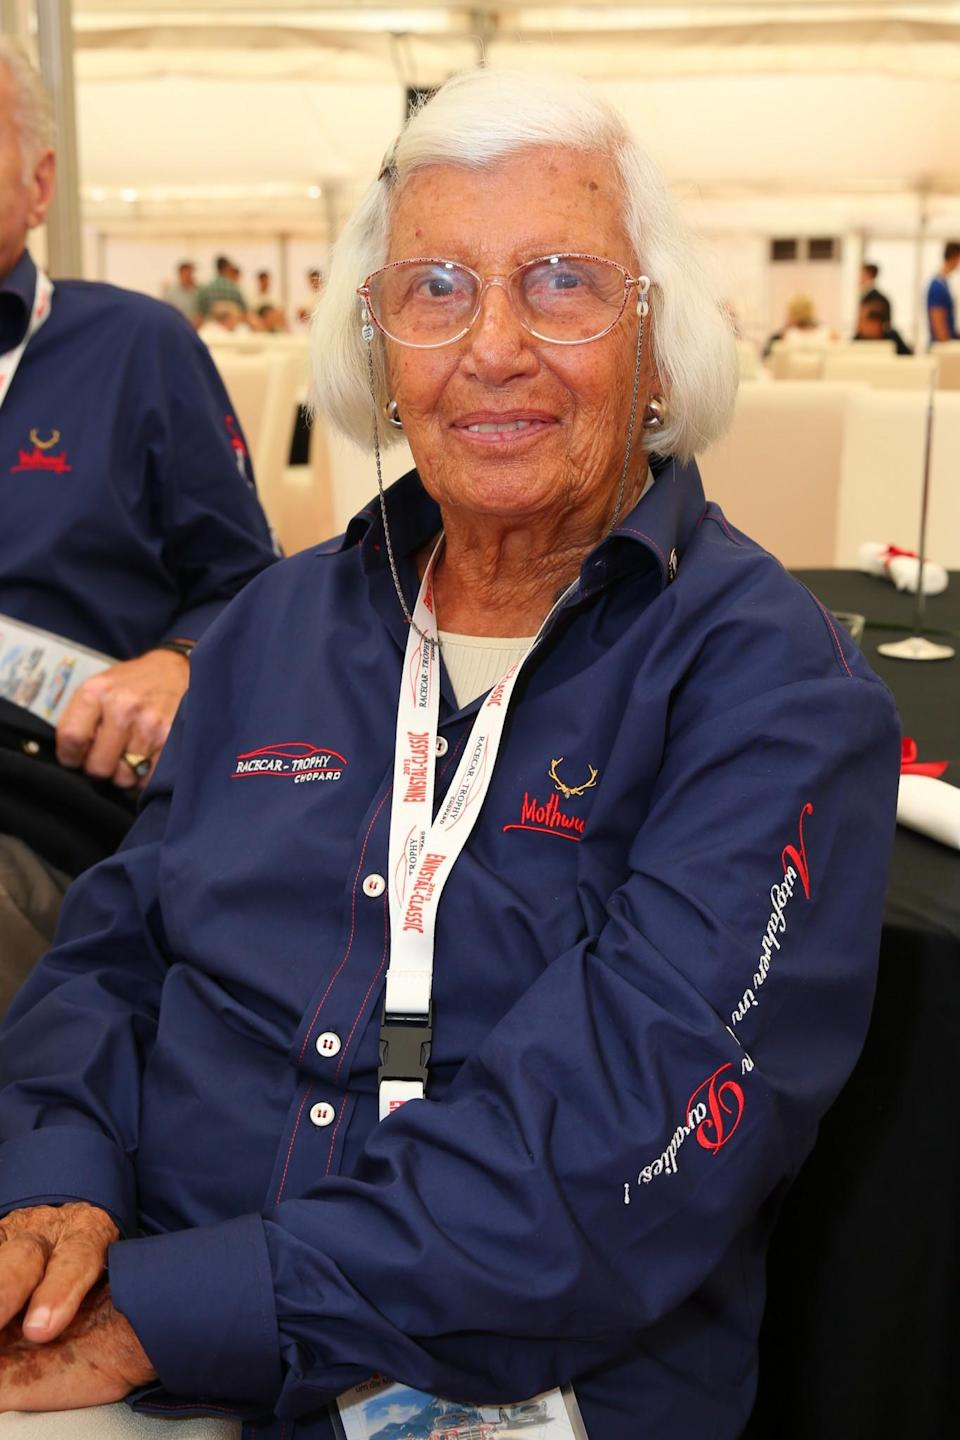 """<p>Maria was the first female Formula One driver and one of only two women to have ever qualified to make it to the starting grid. Her first race was the 1958 Belgian Grand Prix in which she finished 10th. The year after, she was banned from the French race after the director said: """"The only helmet that a woman should use is the one at the hairdressers."""" Although it took two decades for another woman to do the same thing, Maria paved the way for female race car drivers everywhere. <i>[Photo: Getty]</i> </p>"""